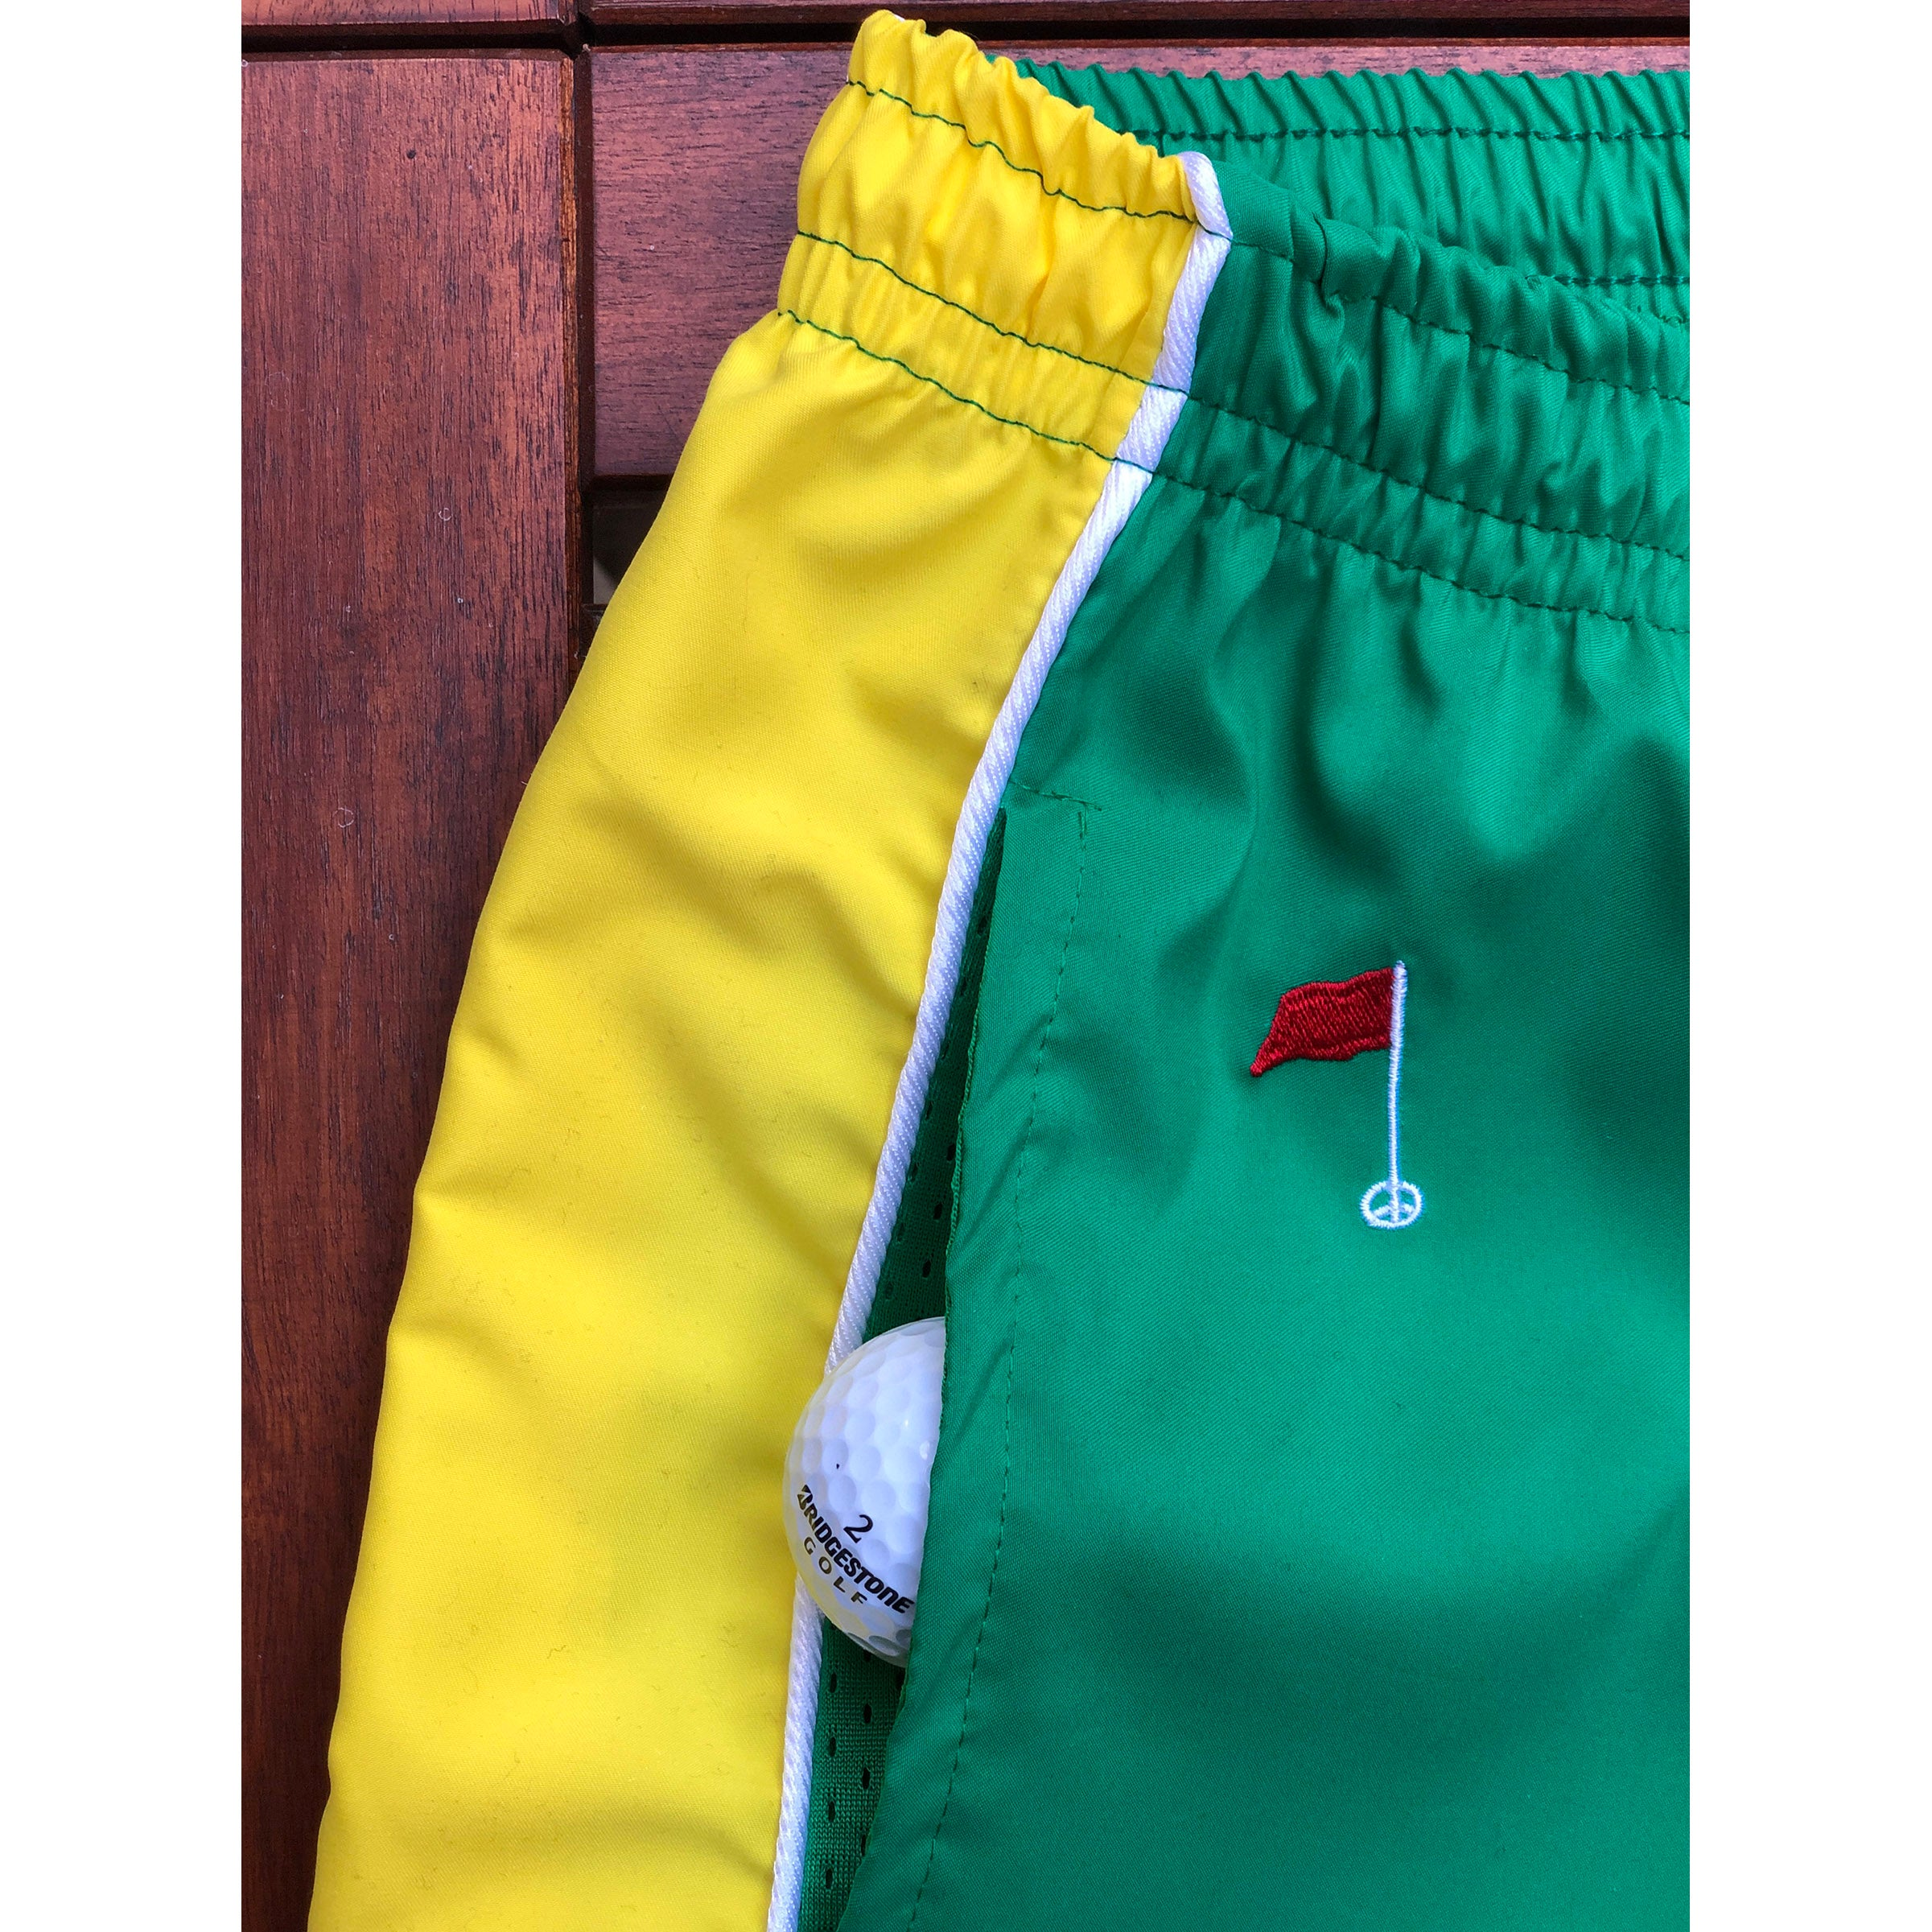 Johnston Gray x Streaker Sports 'Sammy' Shorts - Streaker Sports